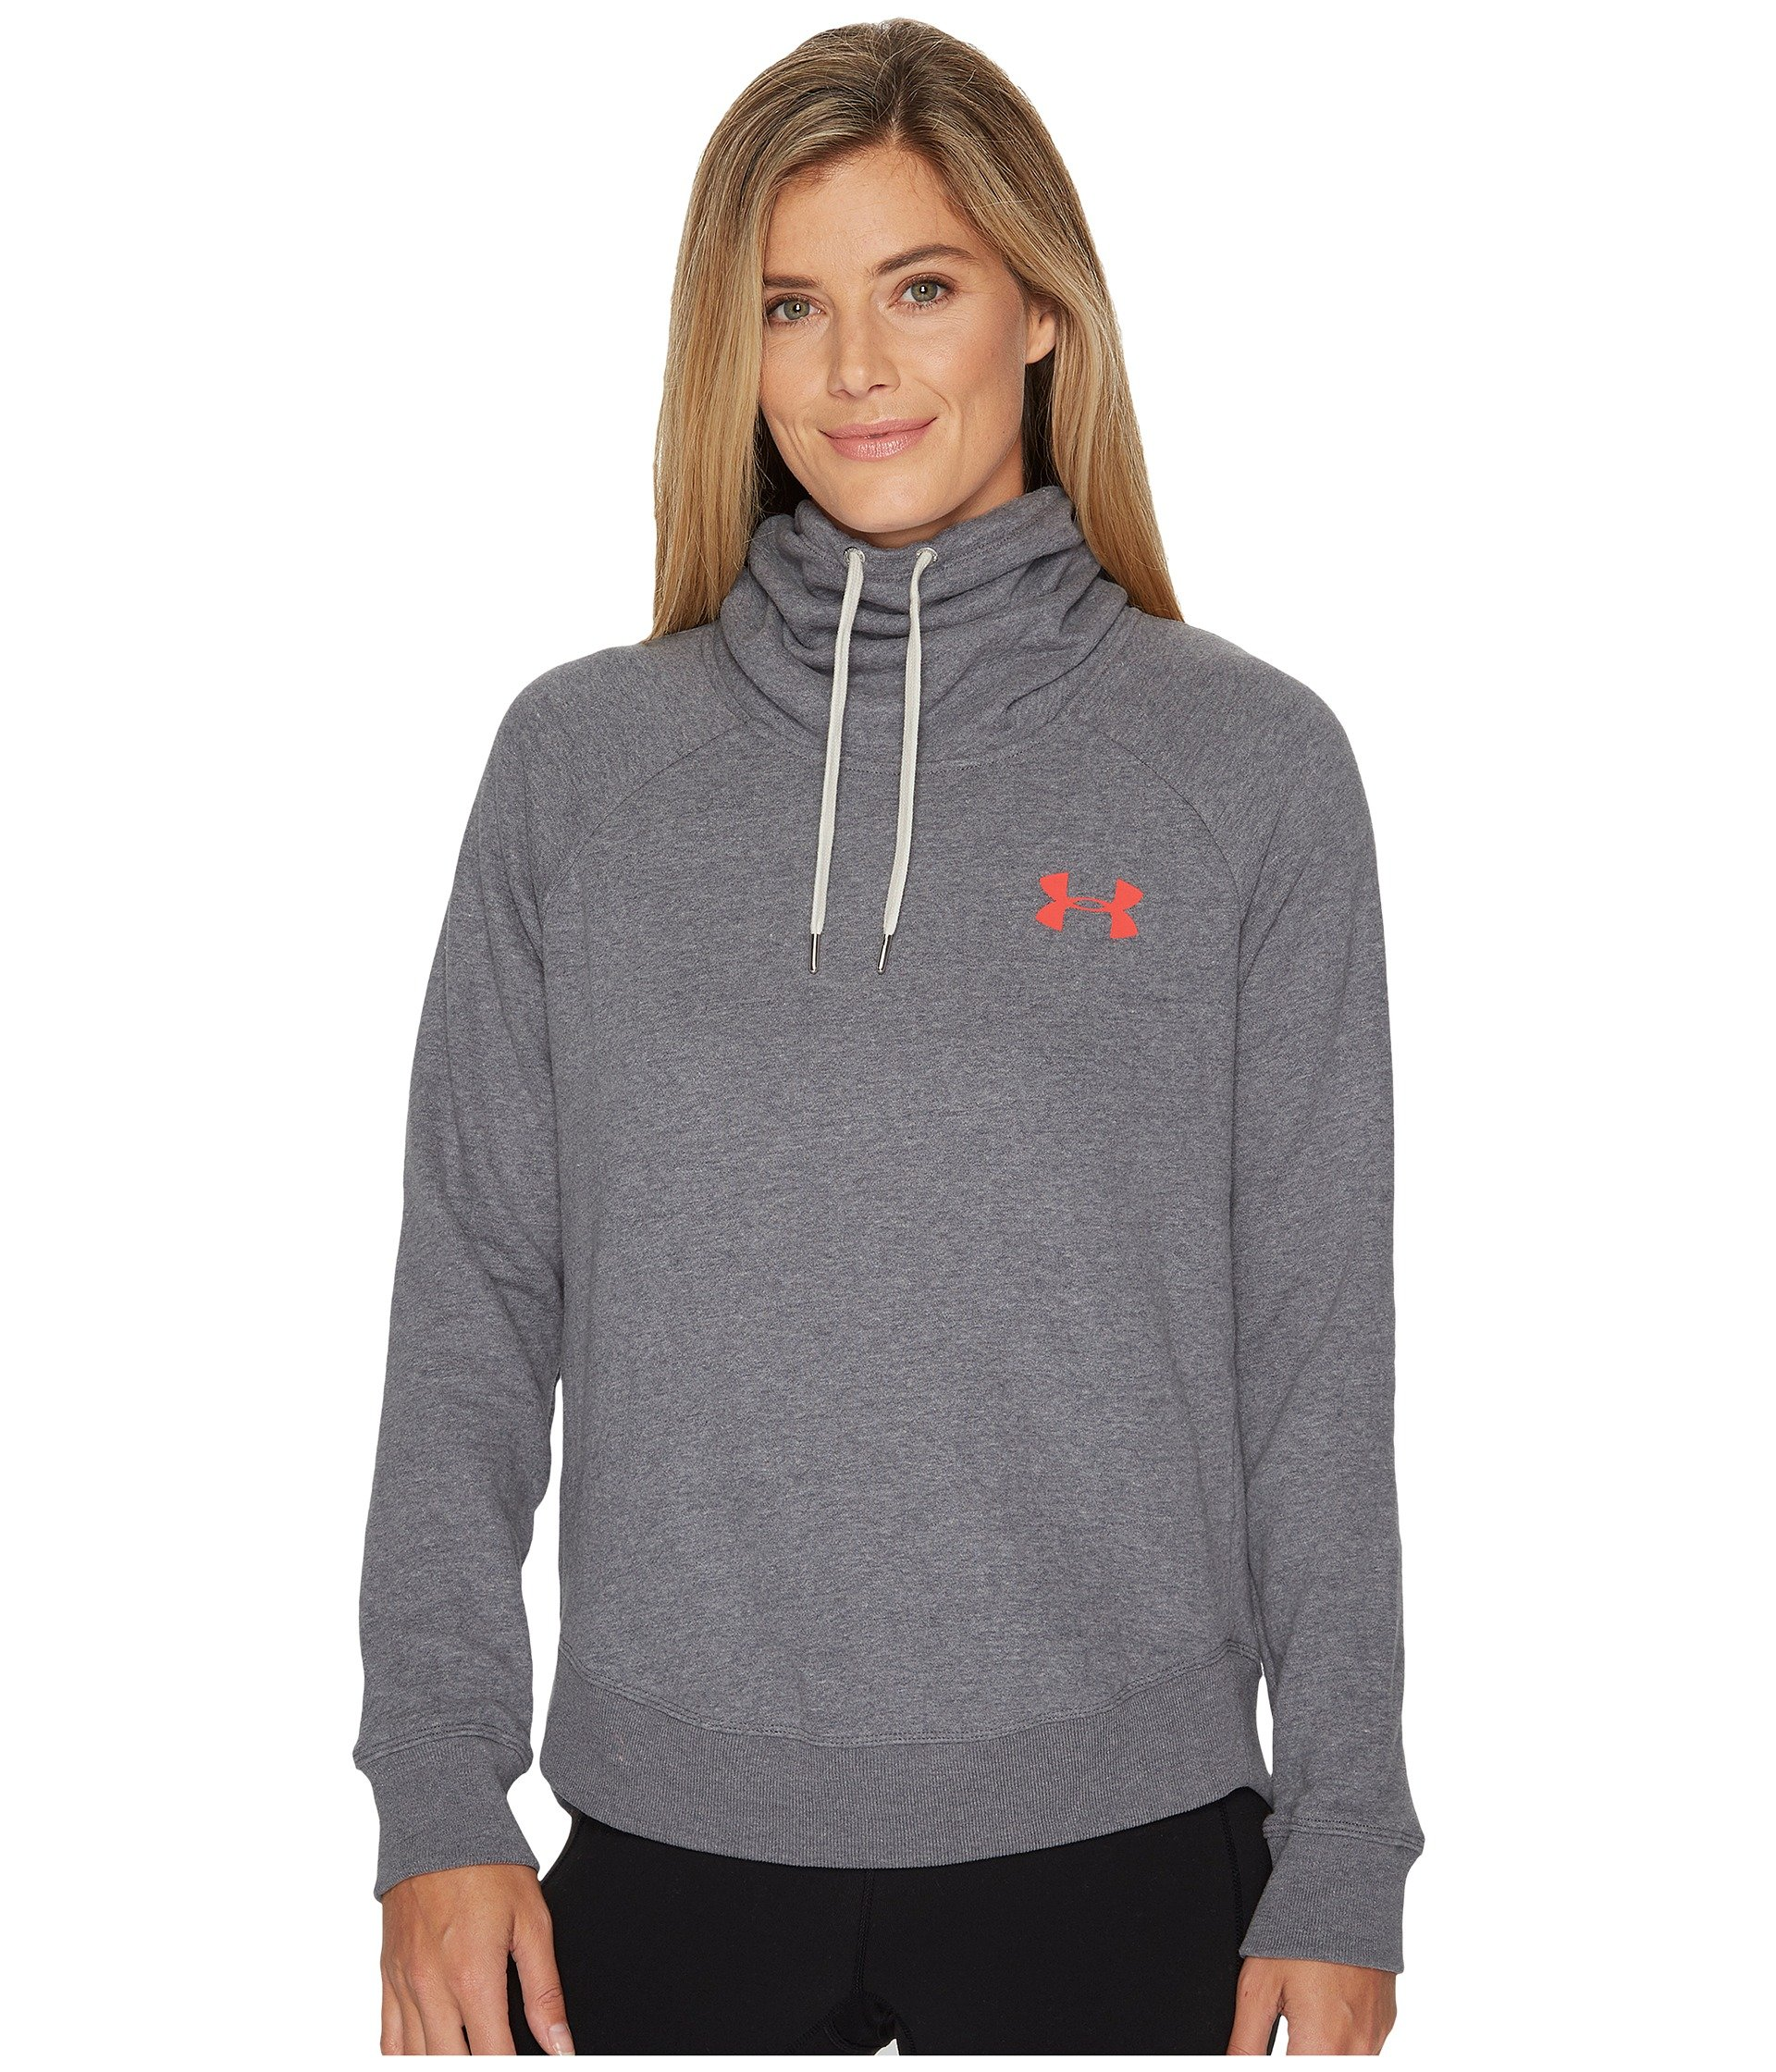 Under Armour Women's Novelty Favorite Pull Over Left Chest Jacket, Carbon Heather /Marathon Red, Large